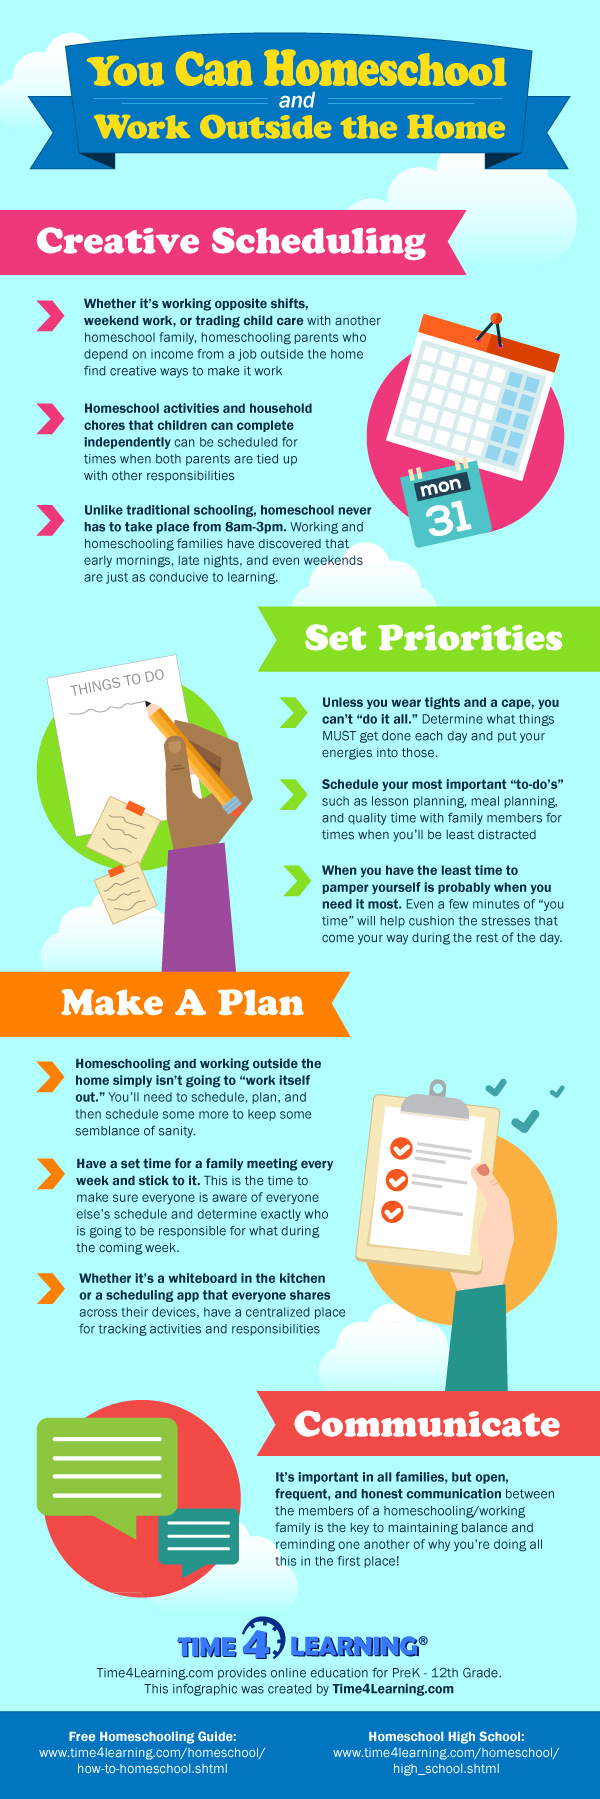 Time4Learning_HomeschoolWorkOutsideHome_Infographic